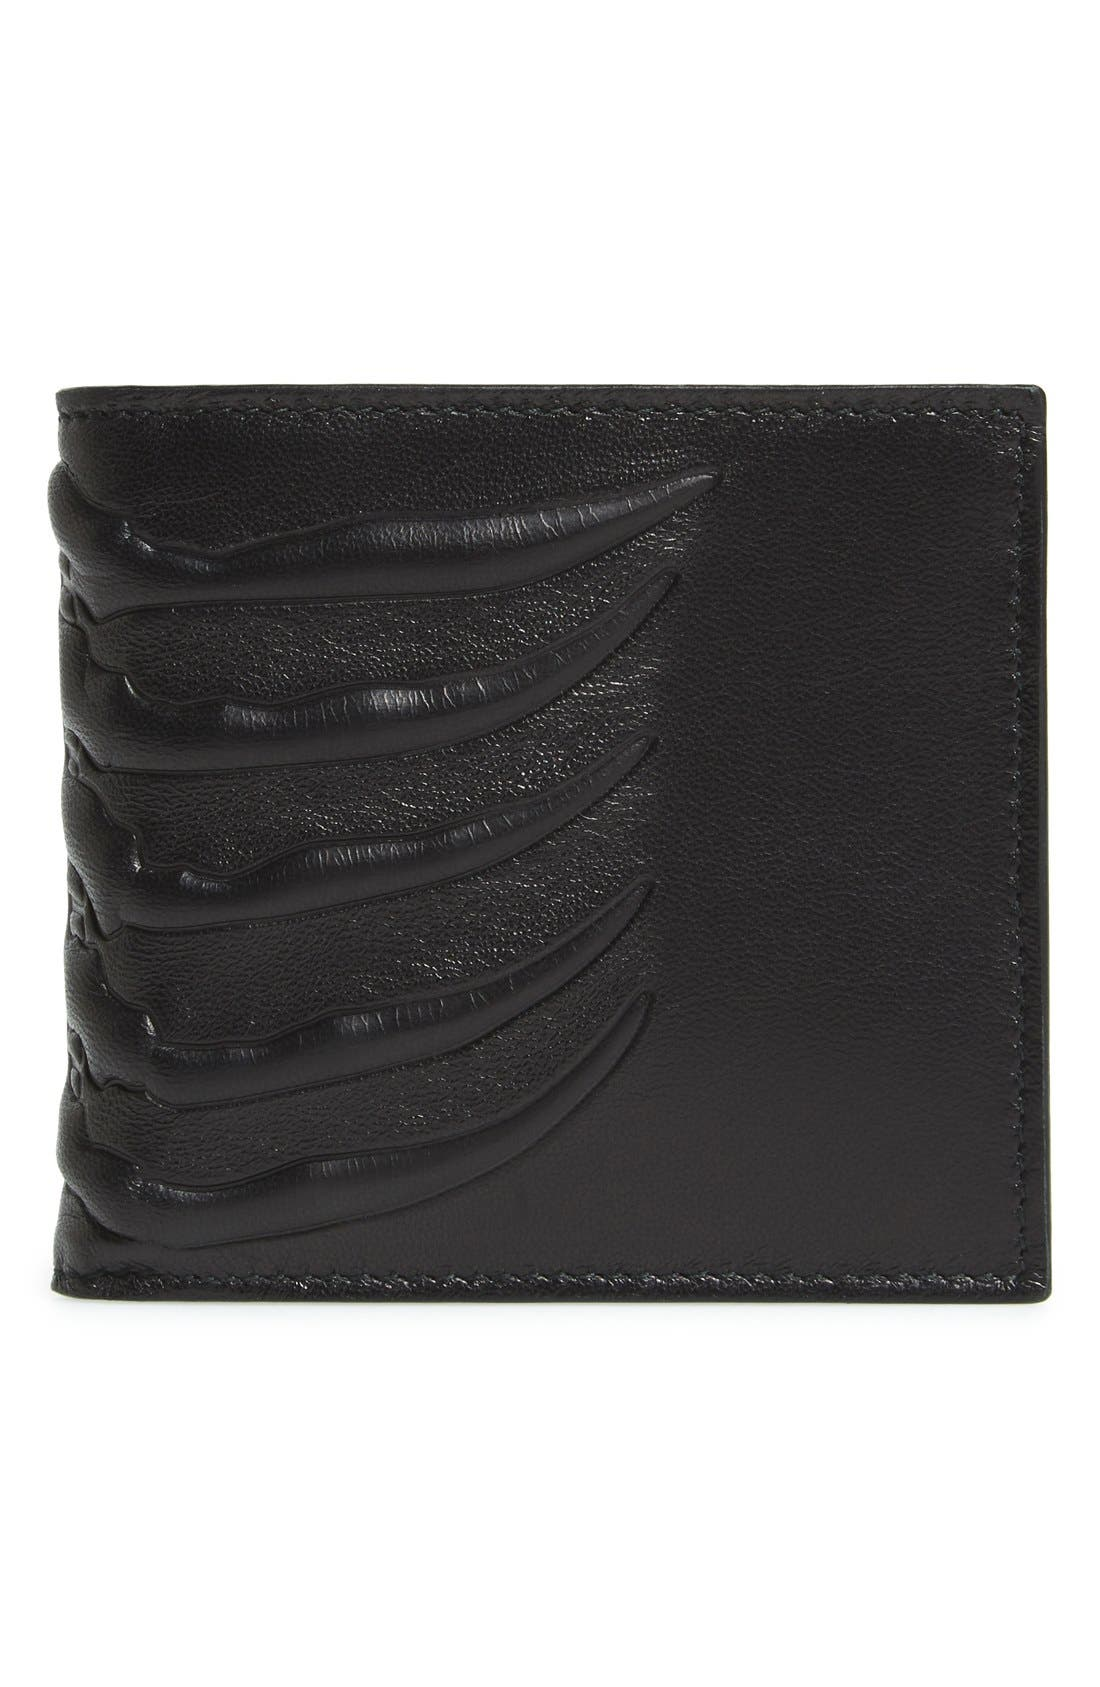 Rib Cage Leather Wallet,                         Main,                         color, Black